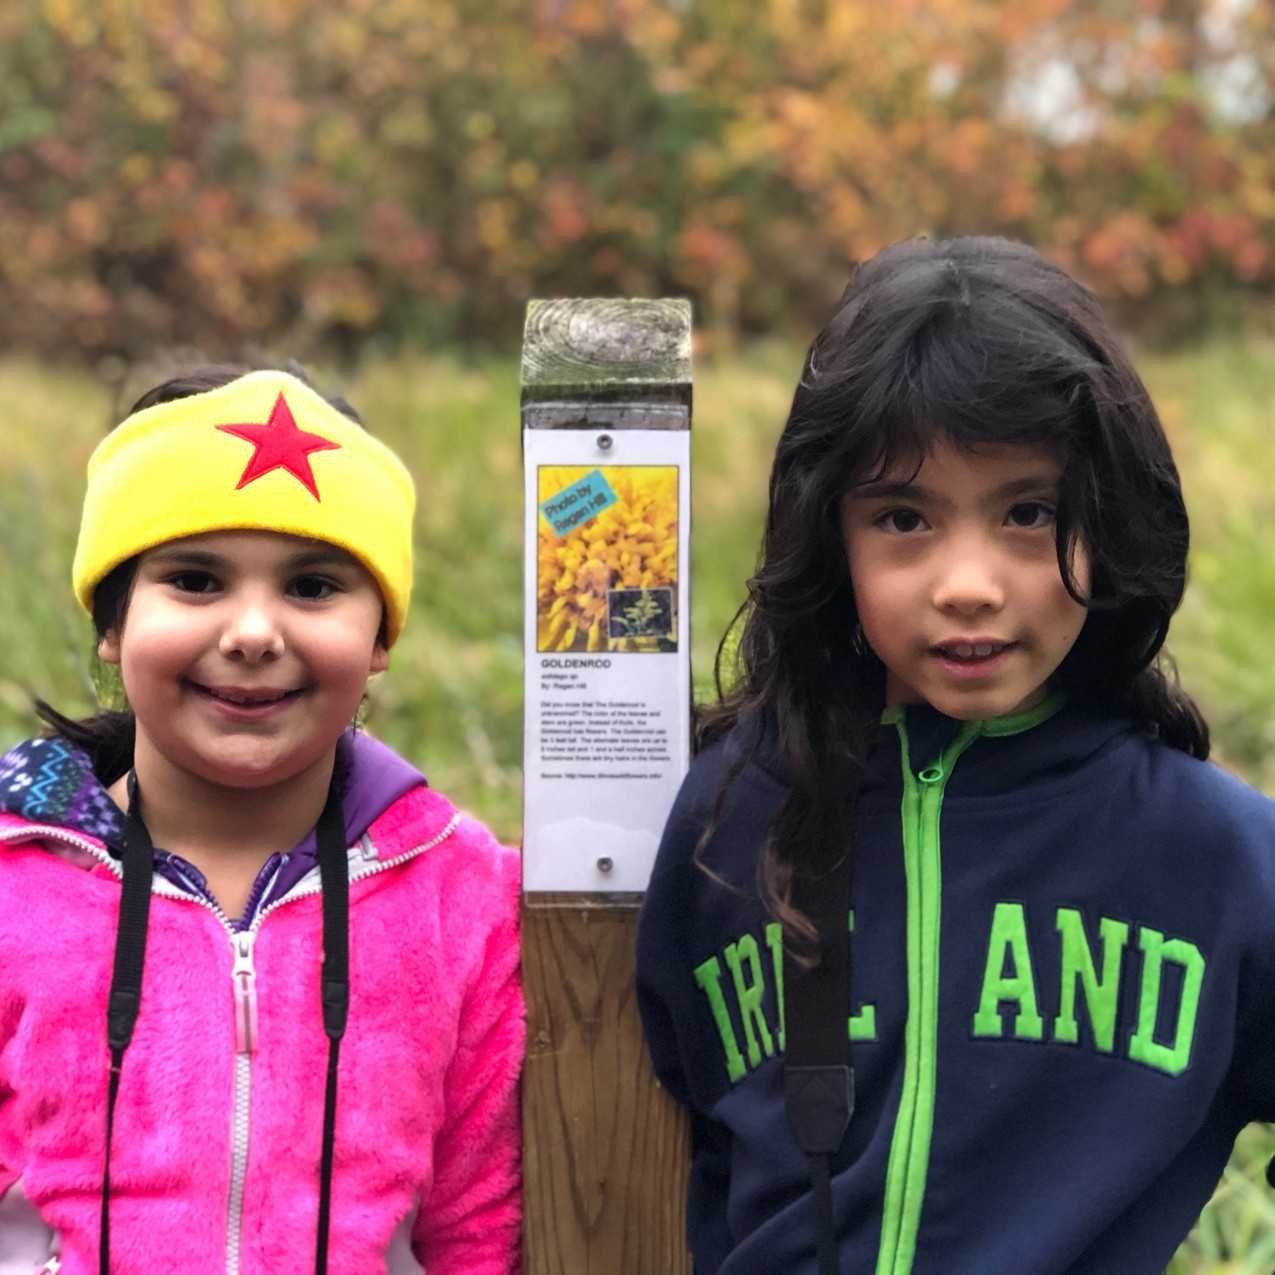 New Trail Signs